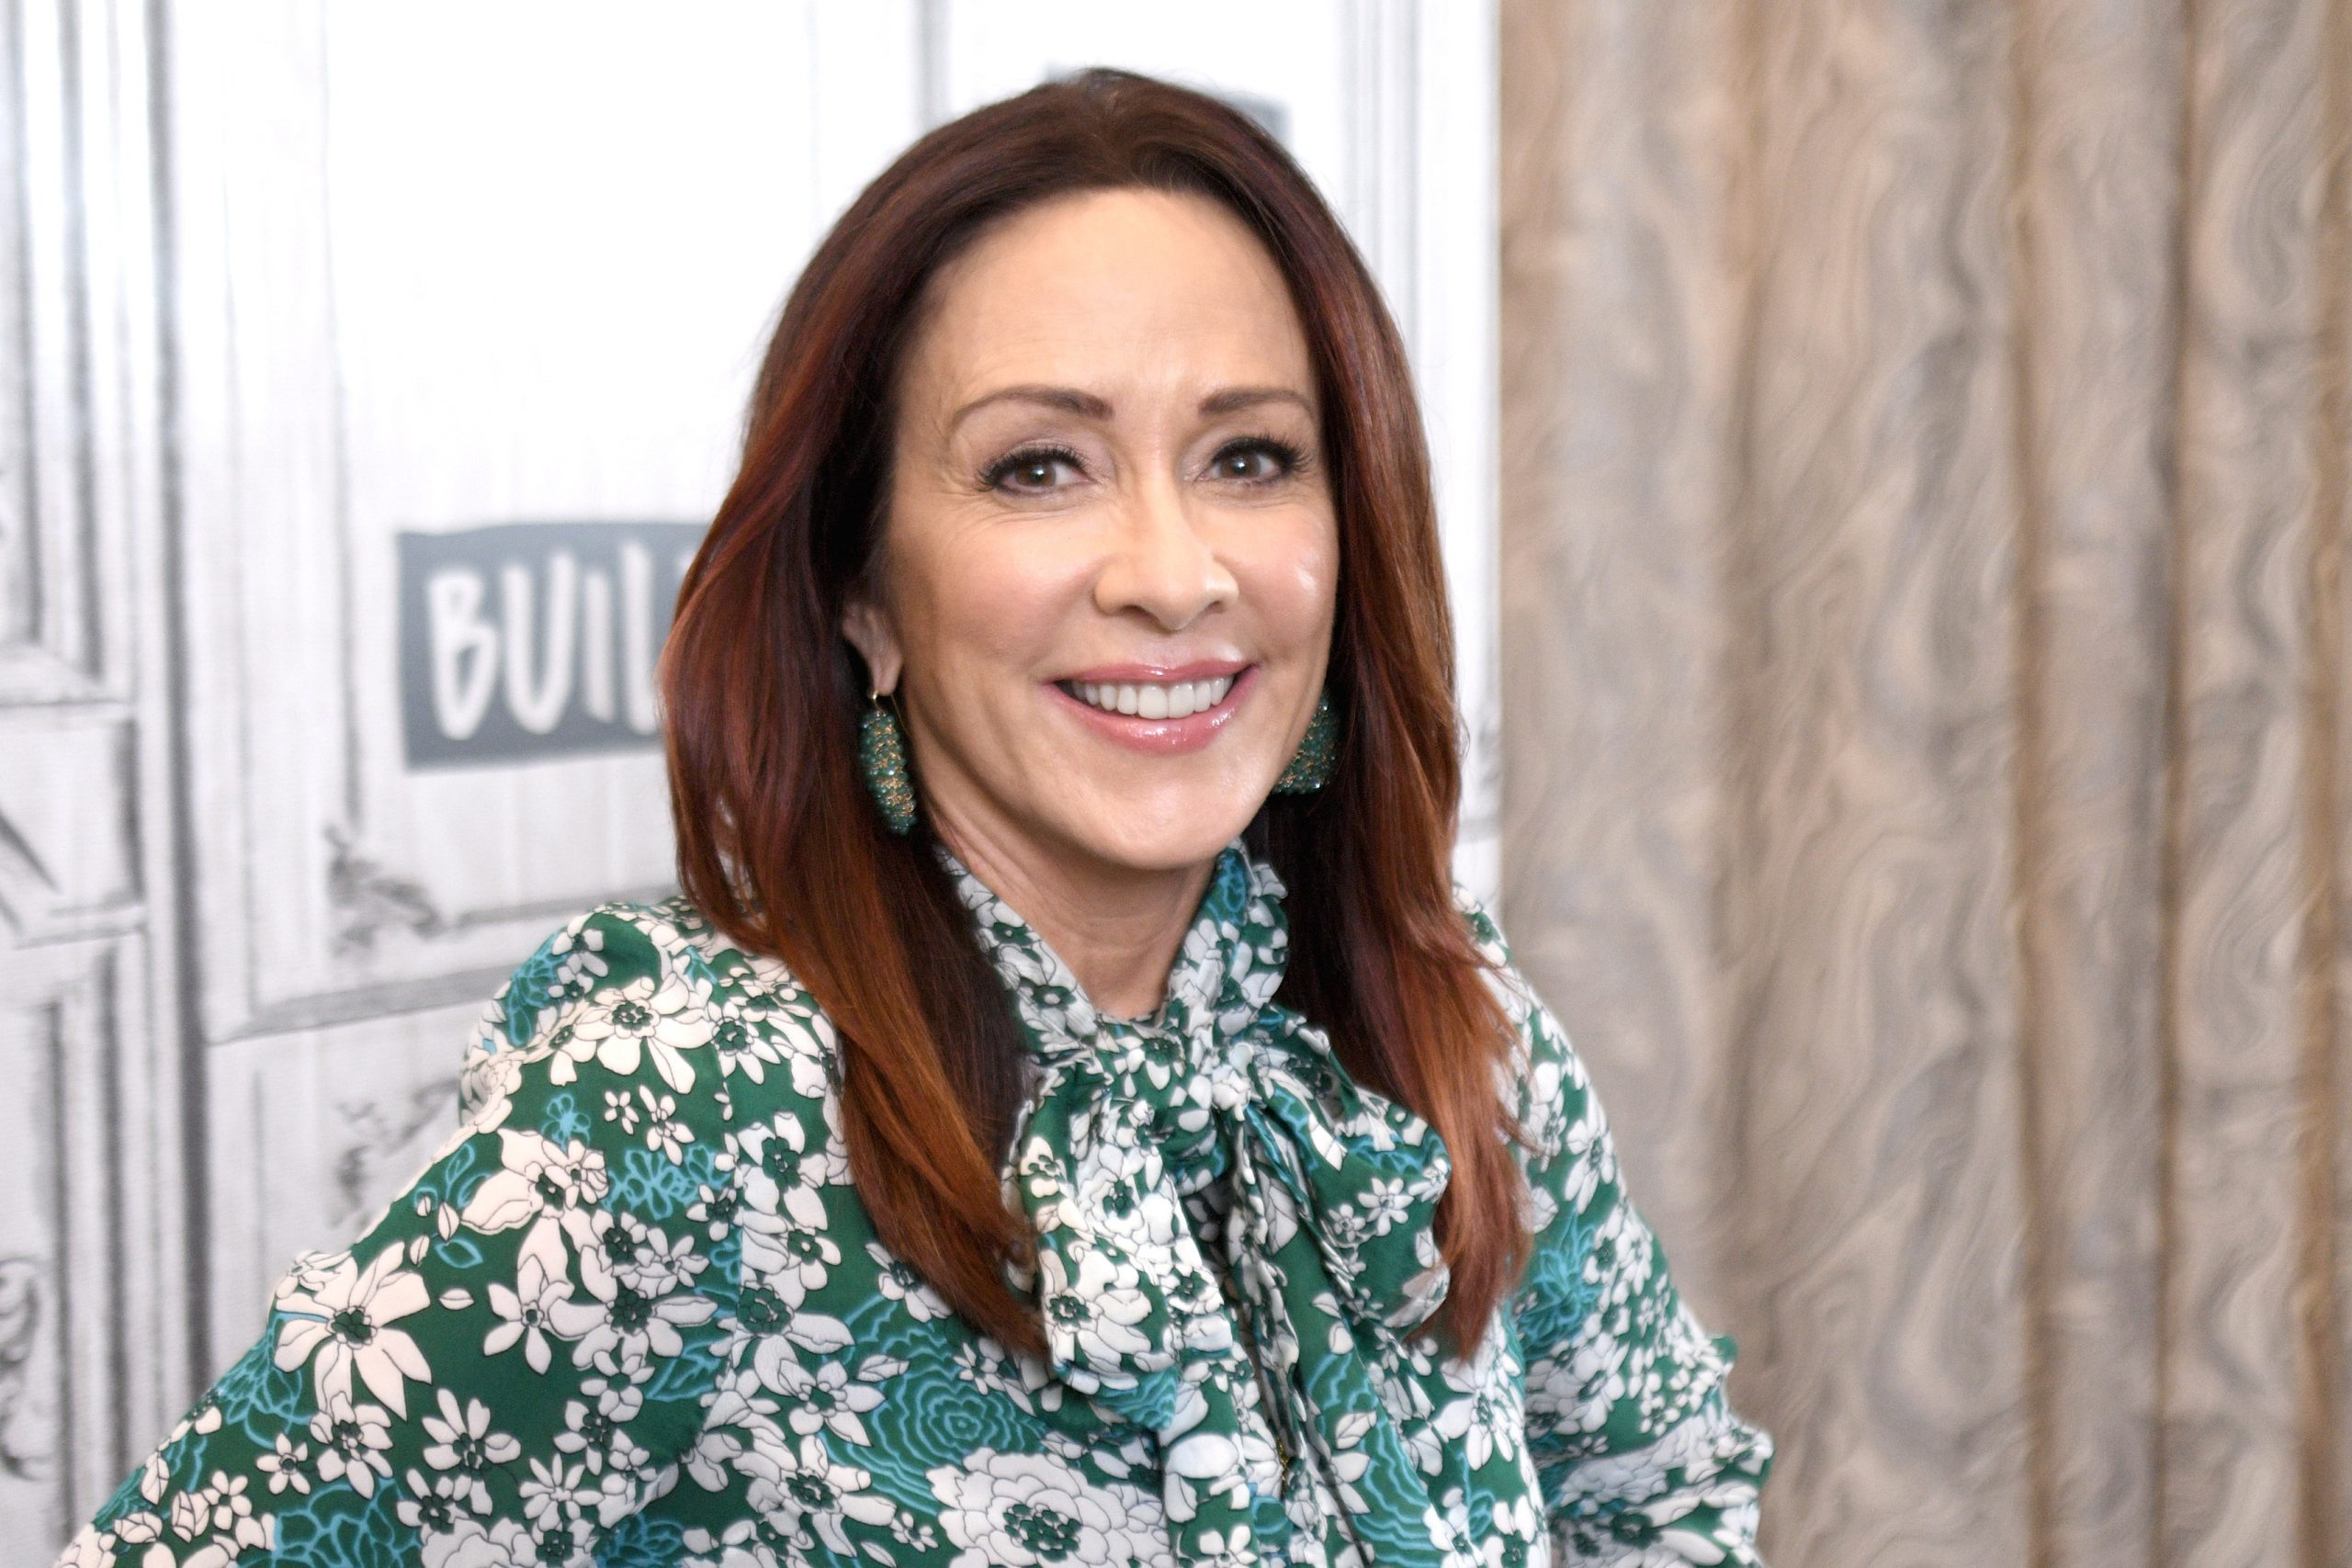 Actor Patricia Heaton smiles for the camera in a green-and-white print blouse in 2018.